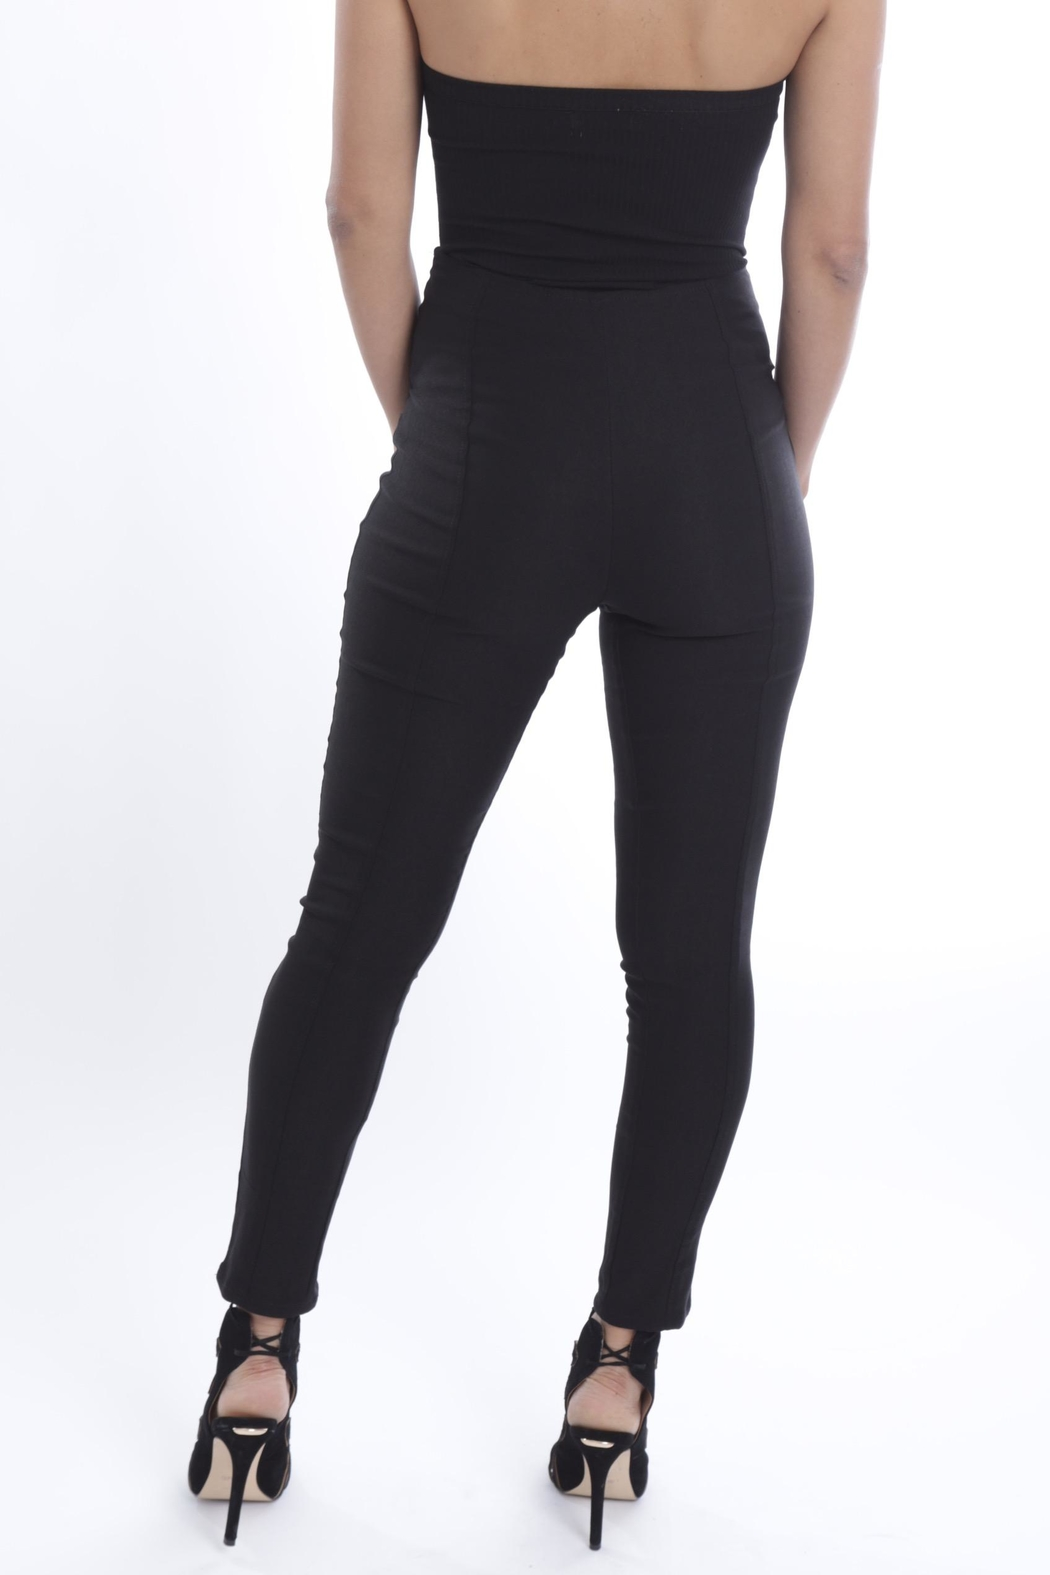 Cattiva Girl Lace-Up Black Pants - Side Cropped Image